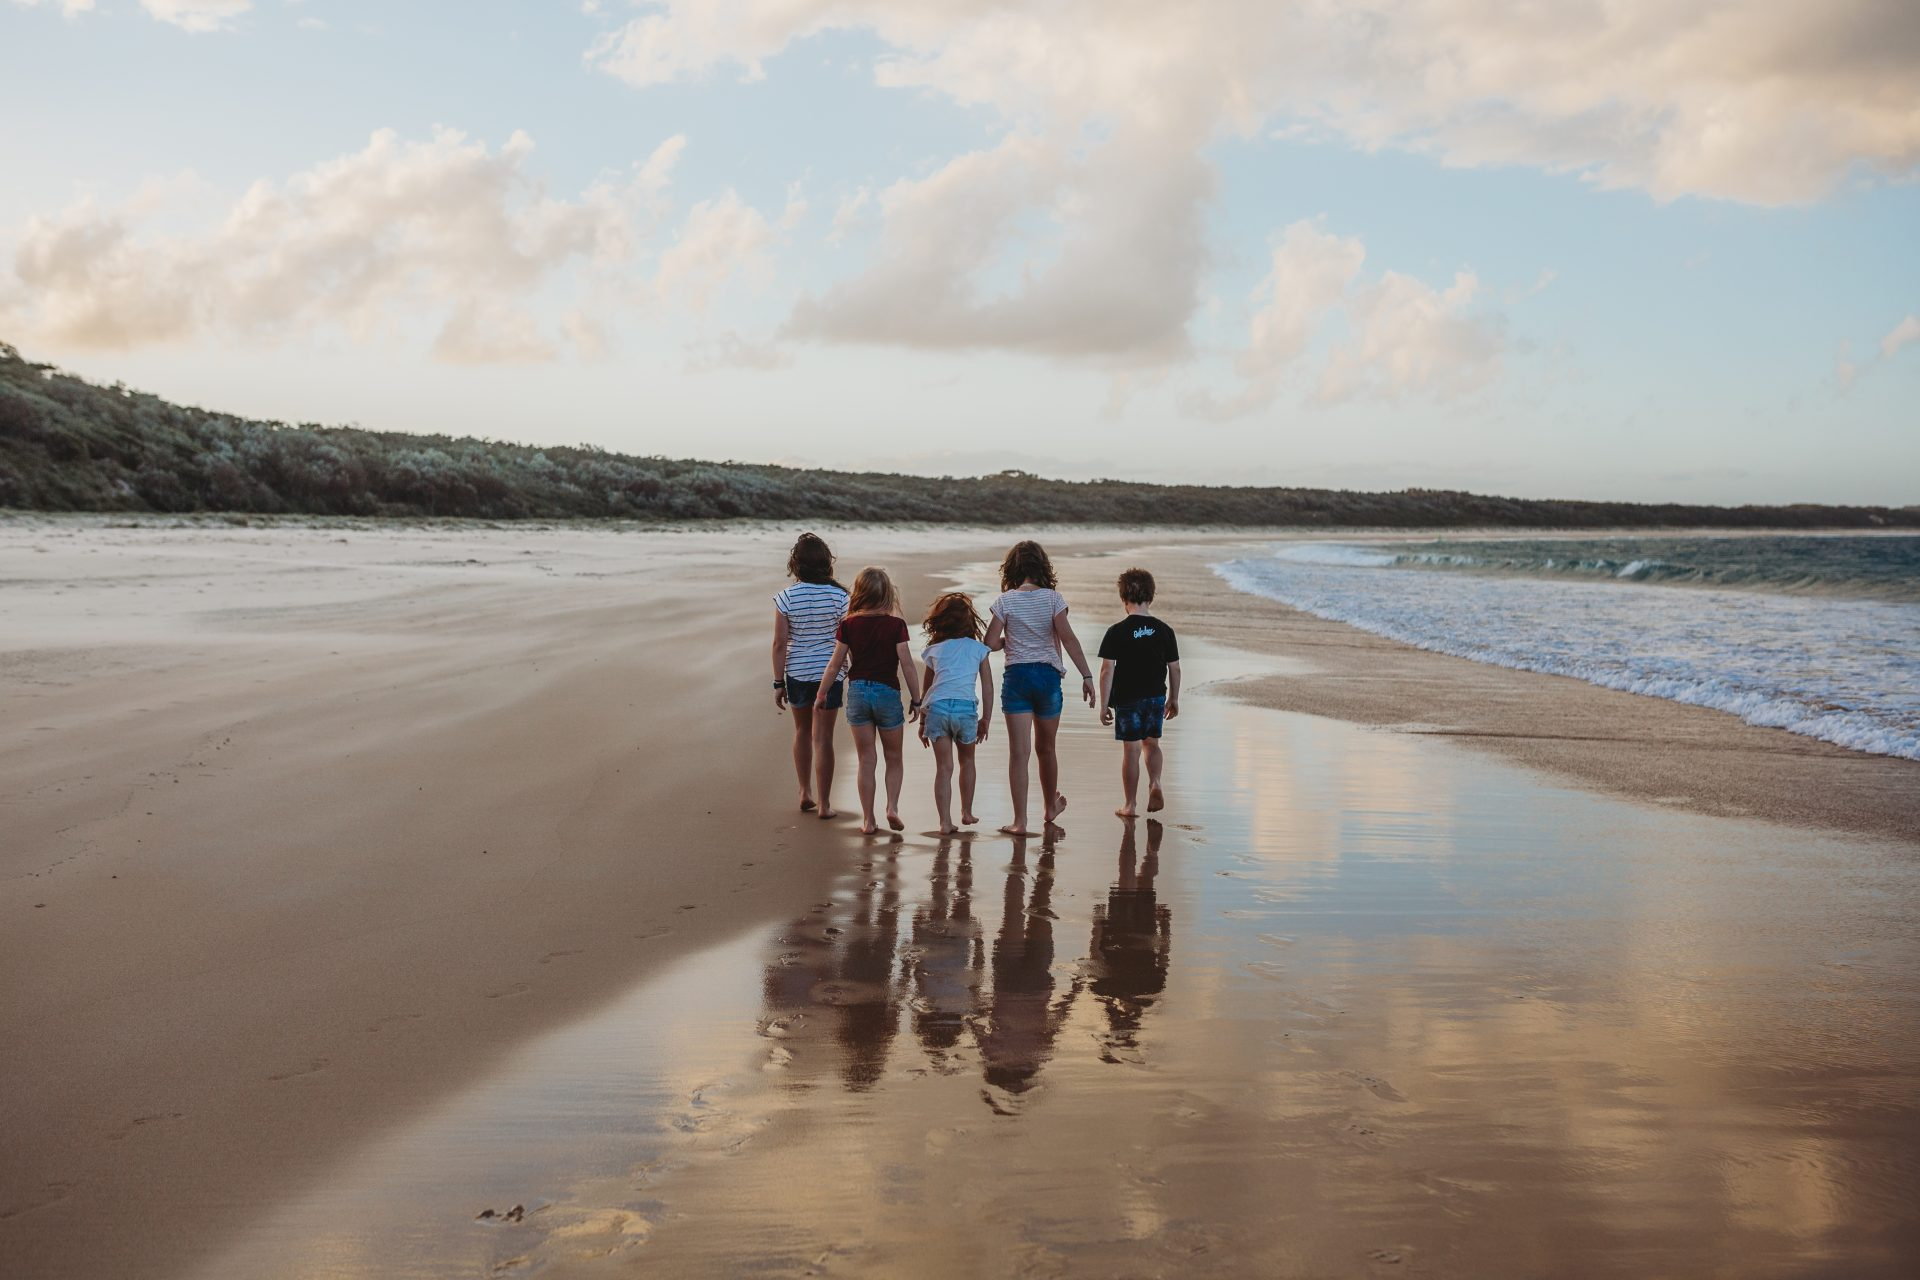 Four young girls and a boy walking along the beach at sunset